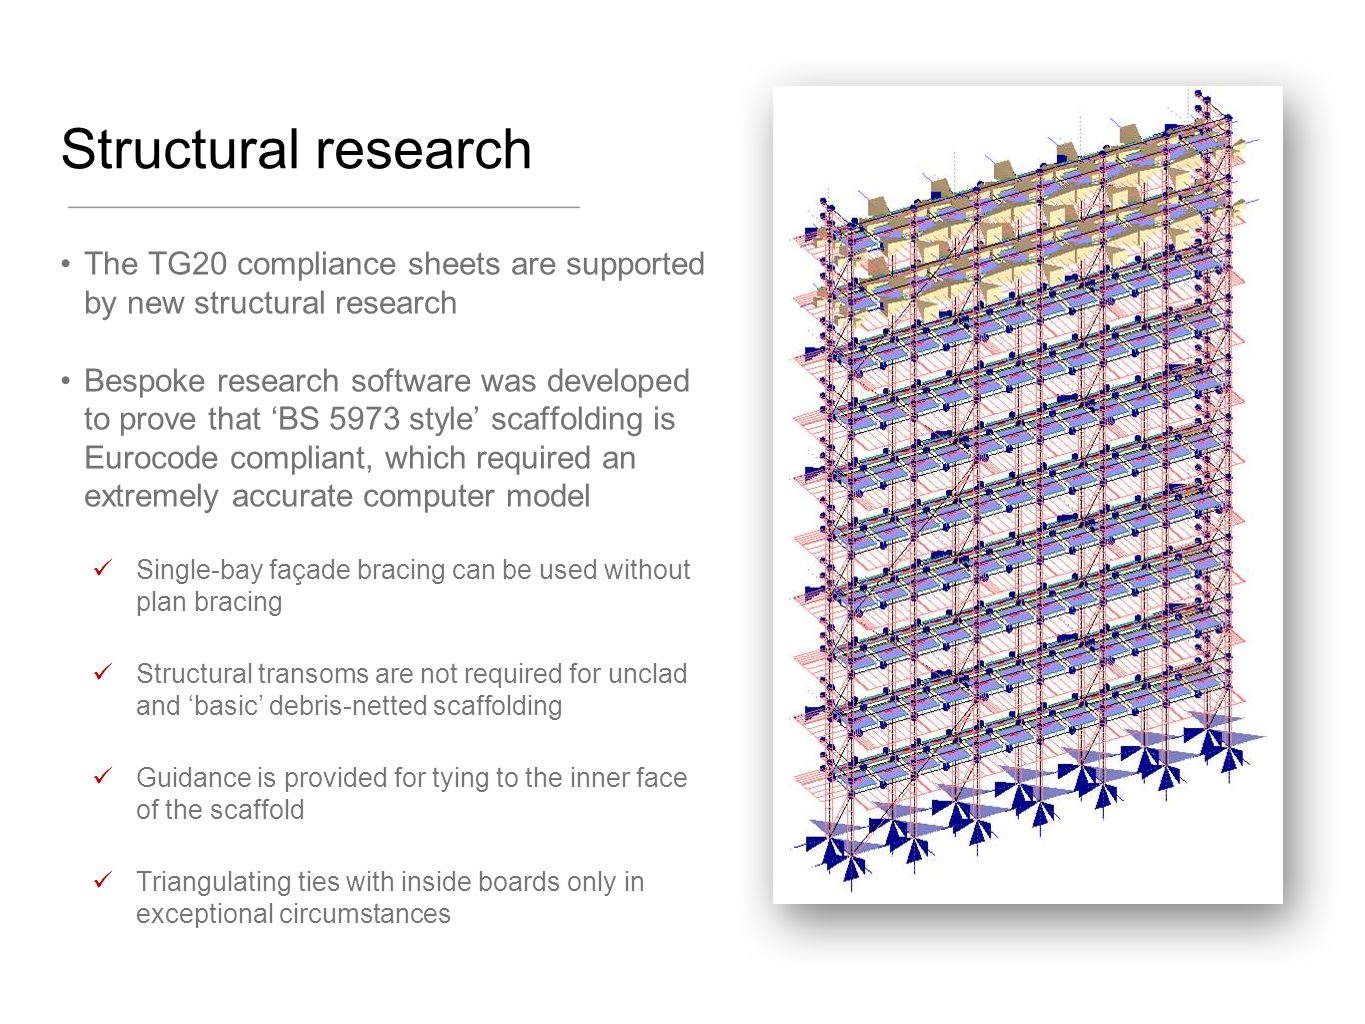 Structural research The TG20 compliance sheets are supported by new structural research.